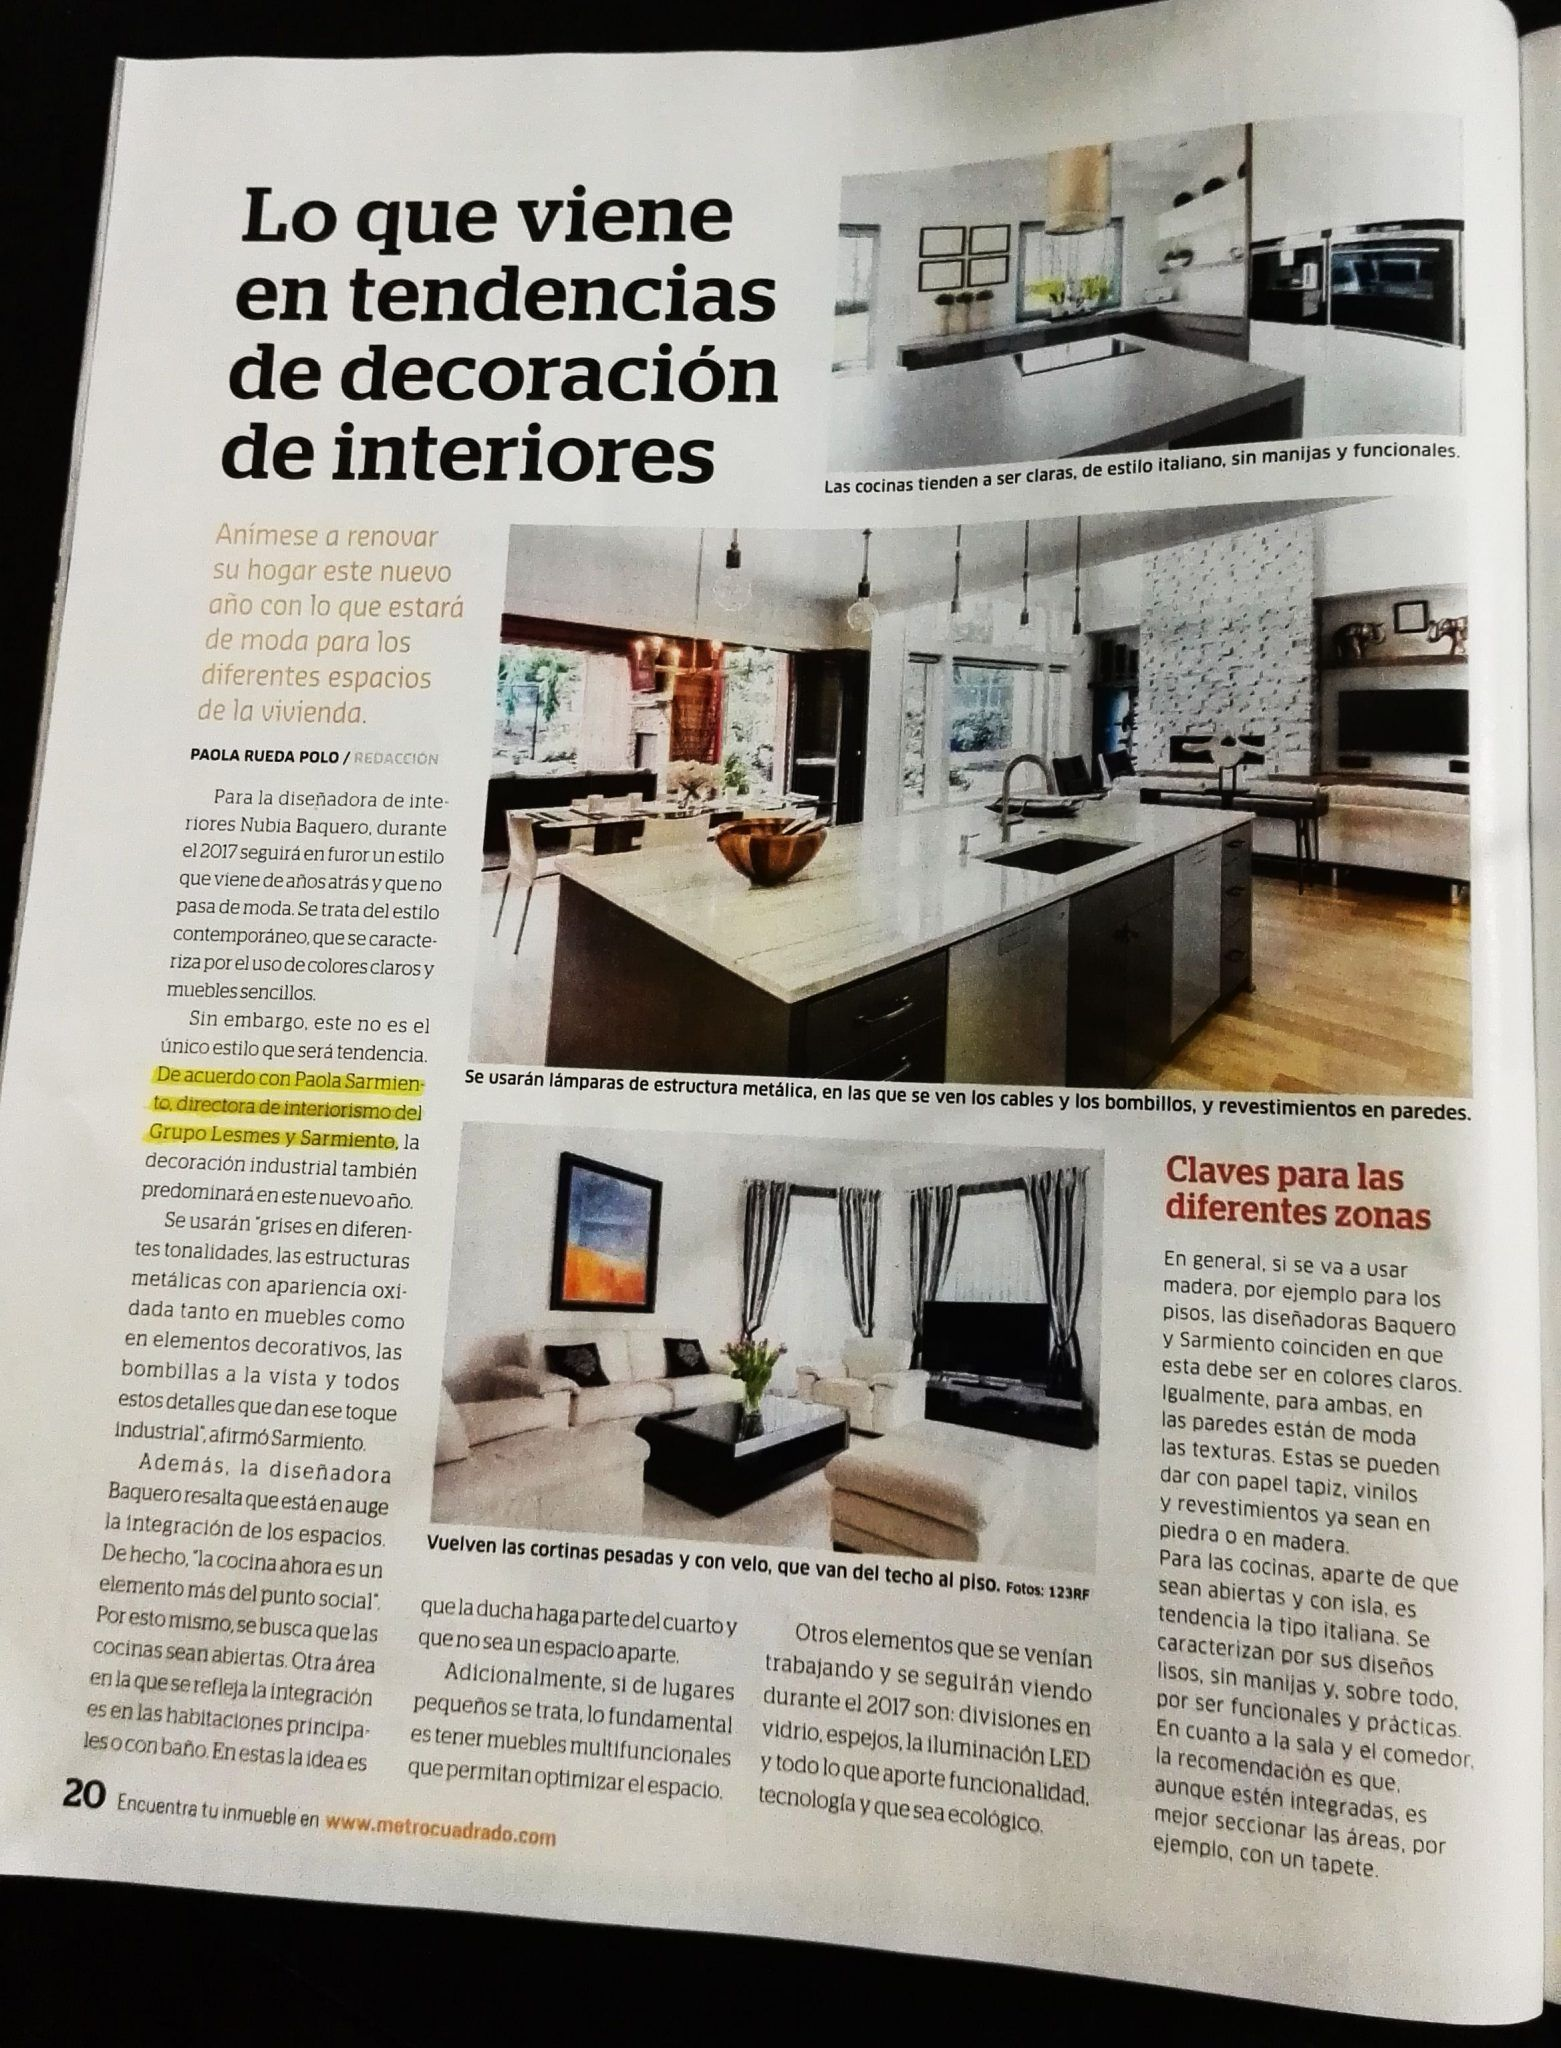 Tendencias De Decoracion De Interiores 2016 Tendencias Y Colores Para El 2017 En Decoración De Interiores